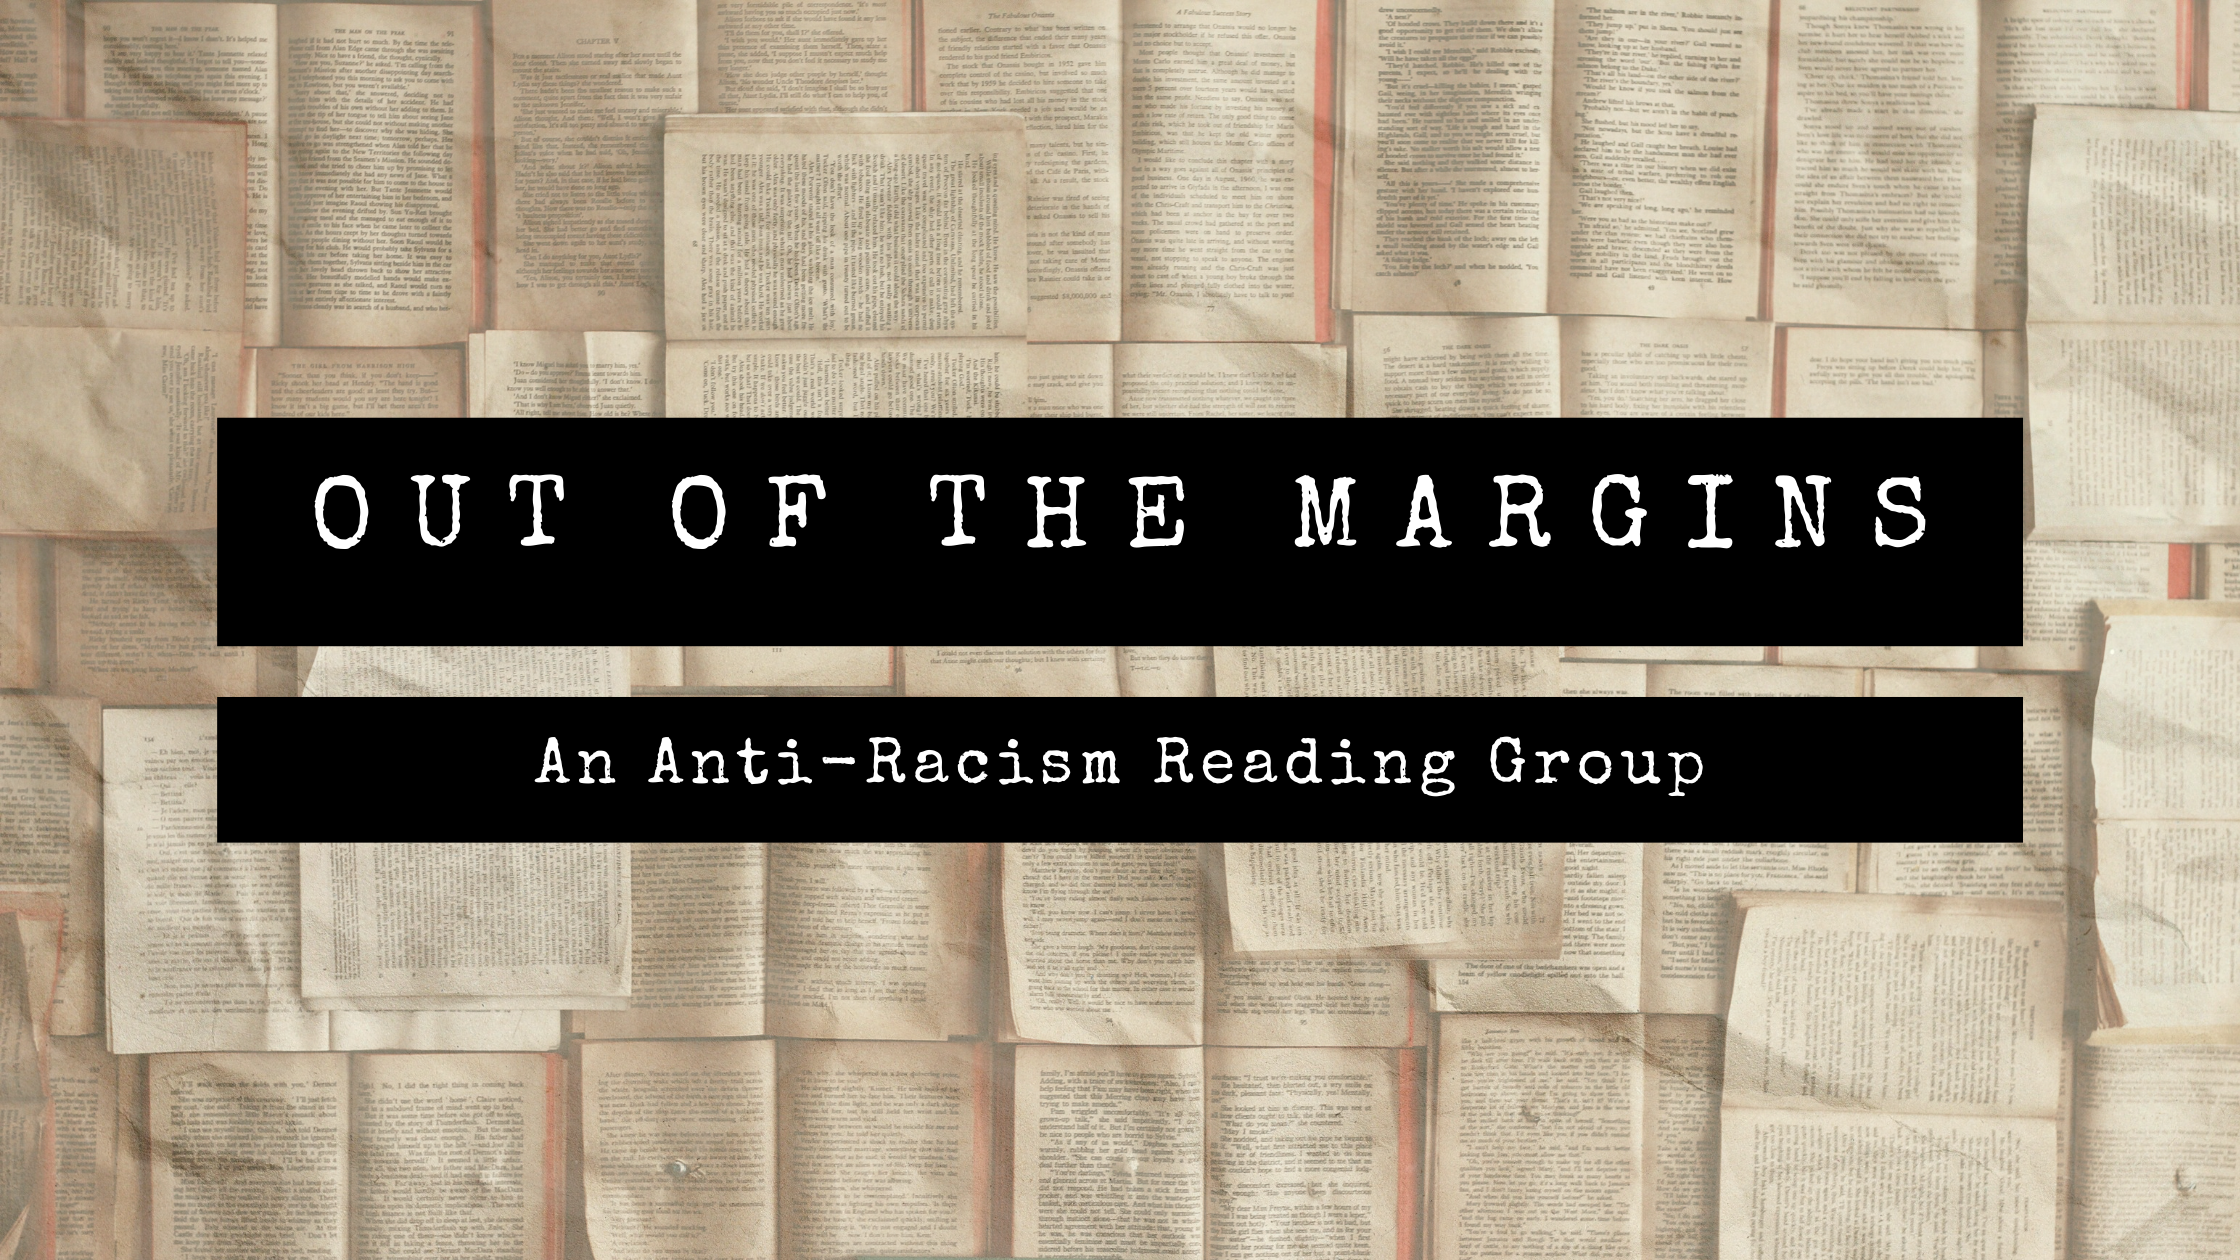 Out of the Margins: An Anti-Racism Reading Group